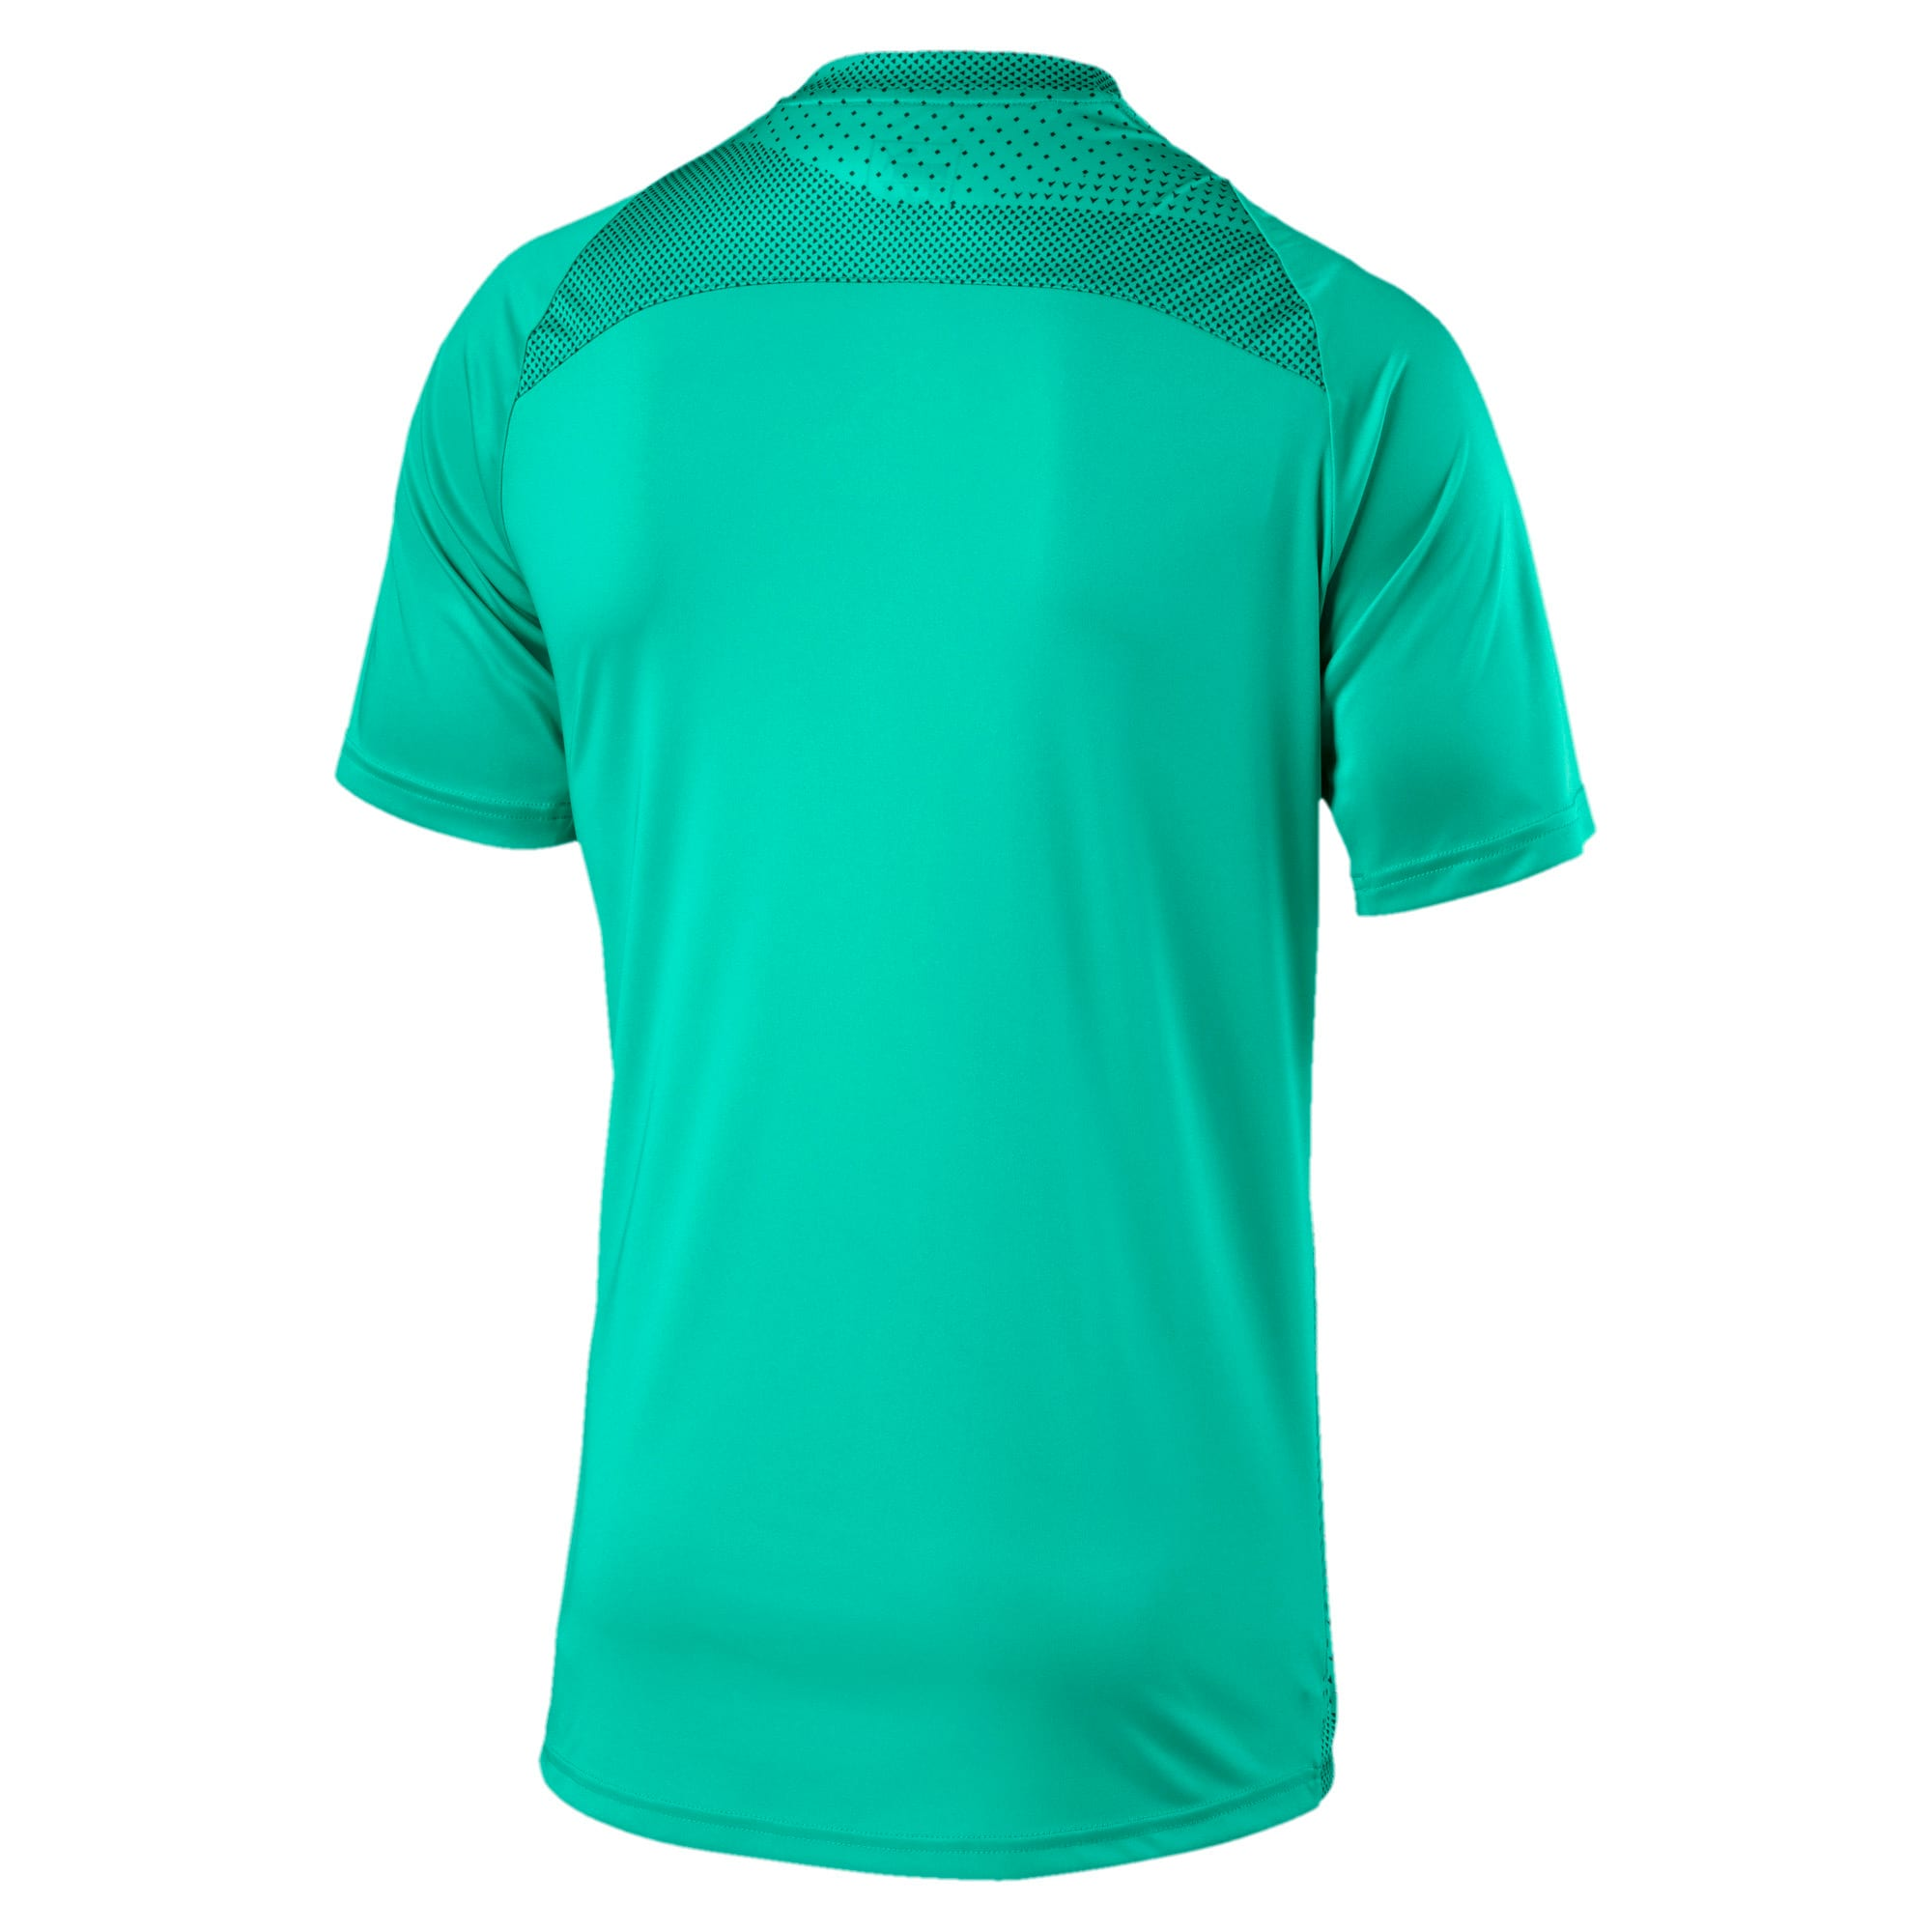 Thumbnail 4 of ftblNXT Graphic Core Men's Training Top, Biscay Green-Iron Gate, medium